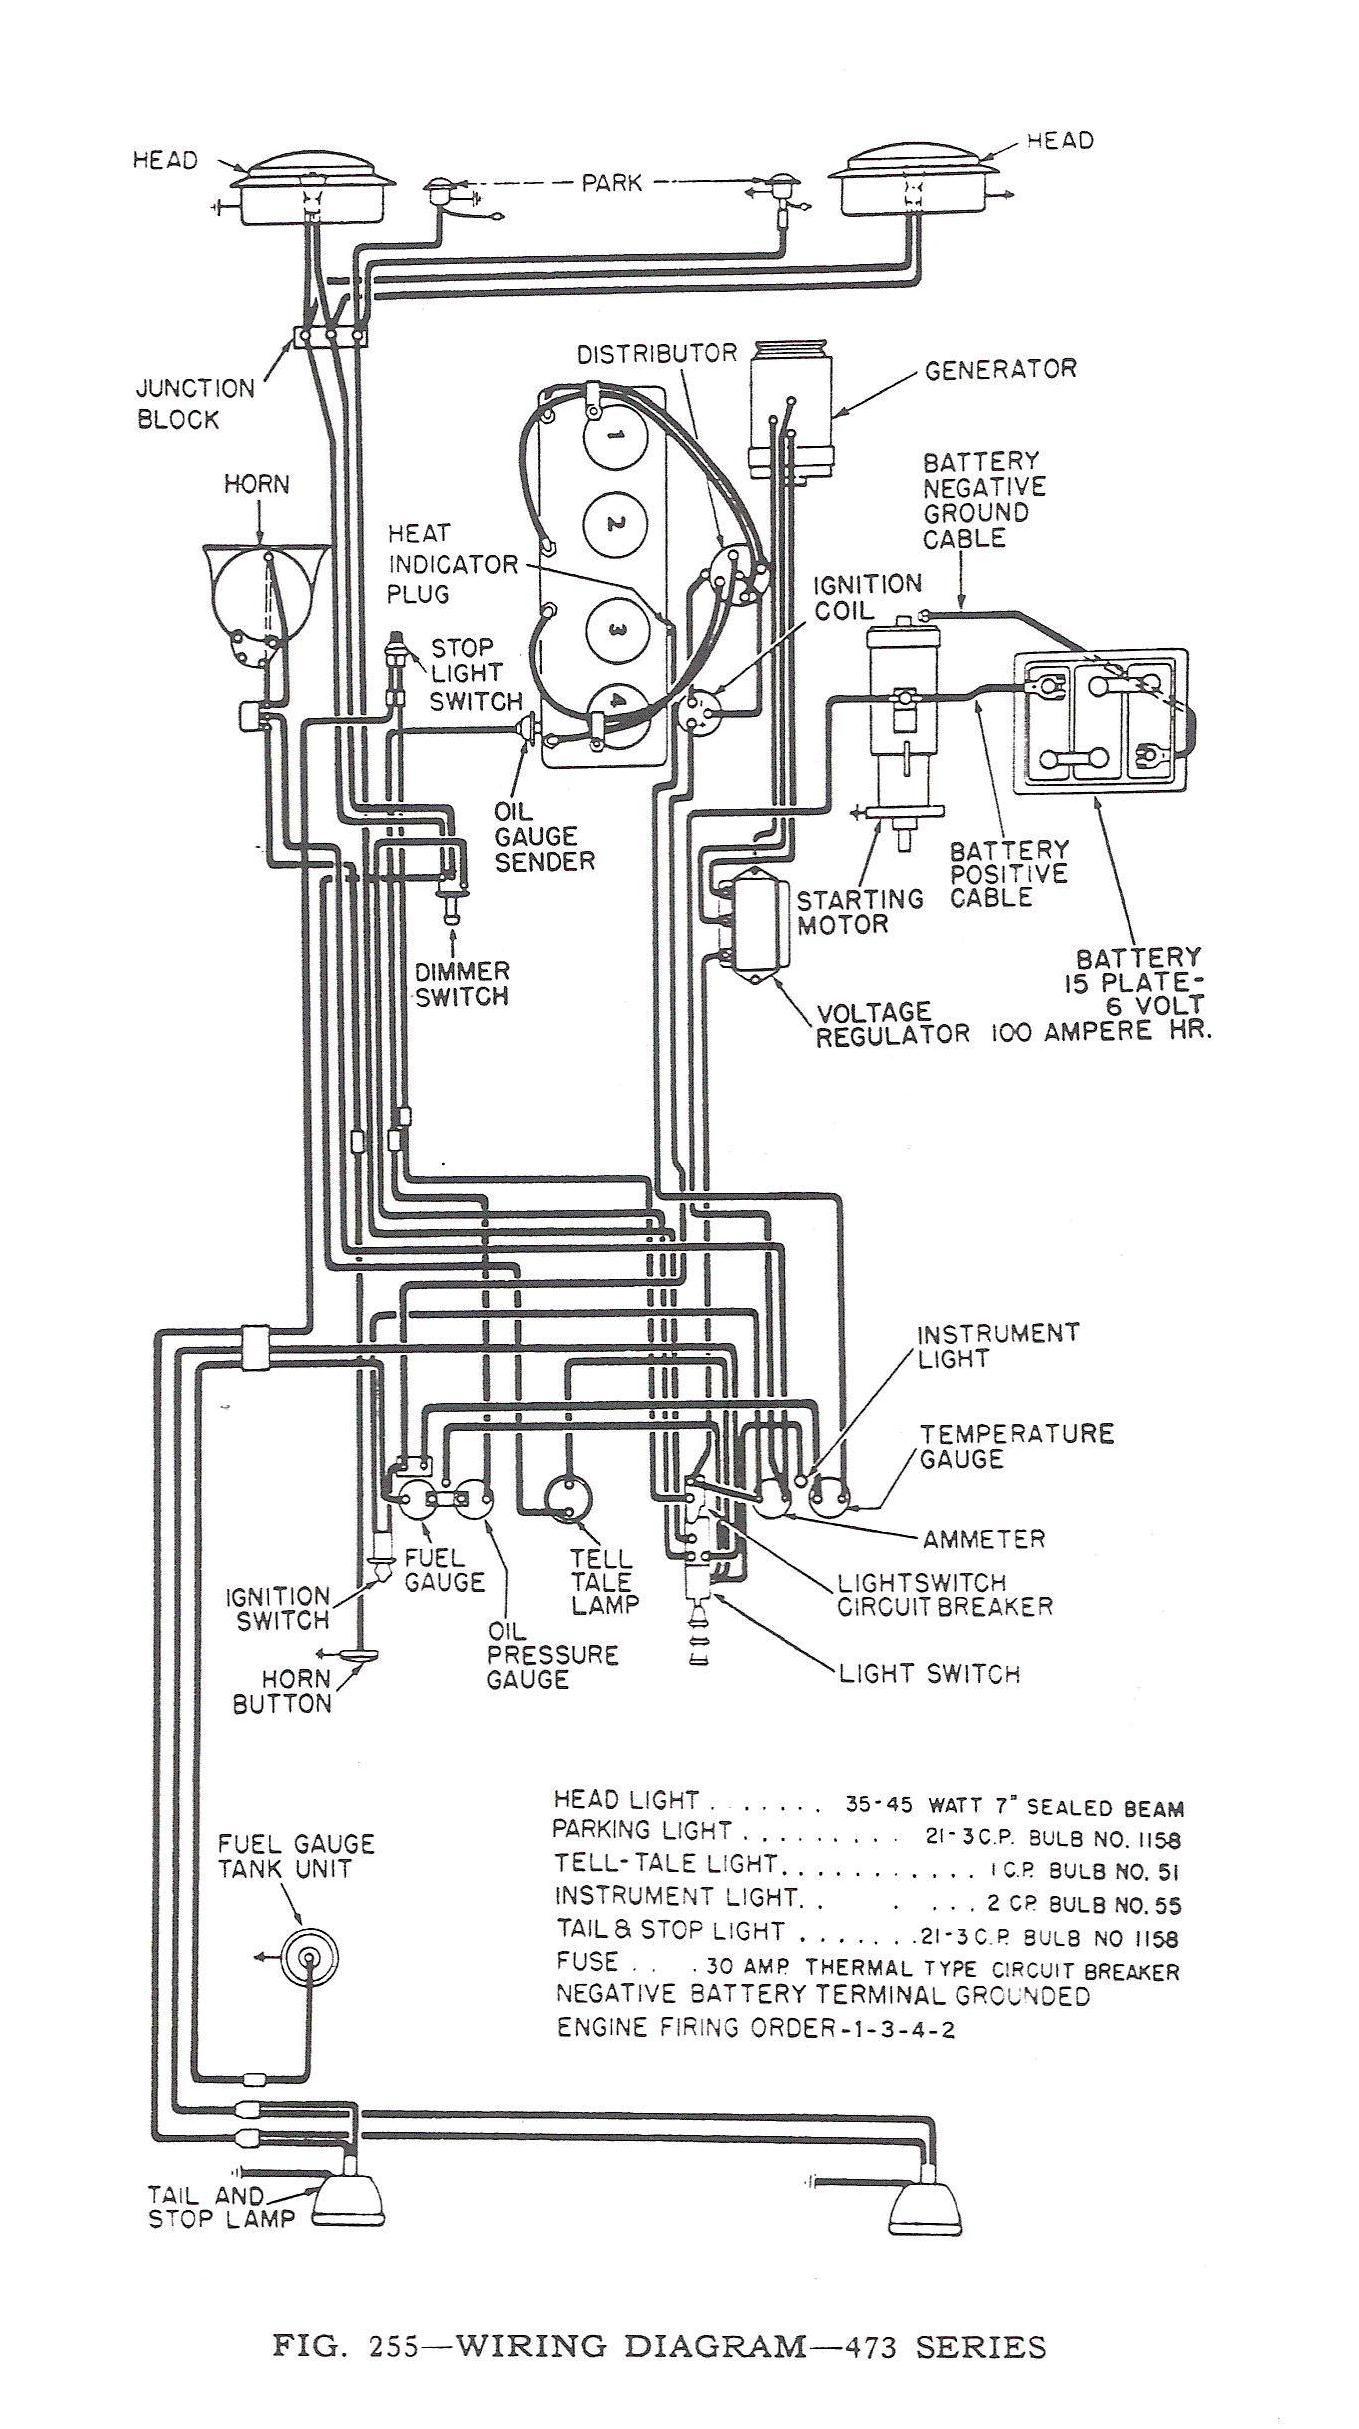 medium resolution of 1952 jeep series 473 wiring diagrams google search willis overland jeep willys jeep